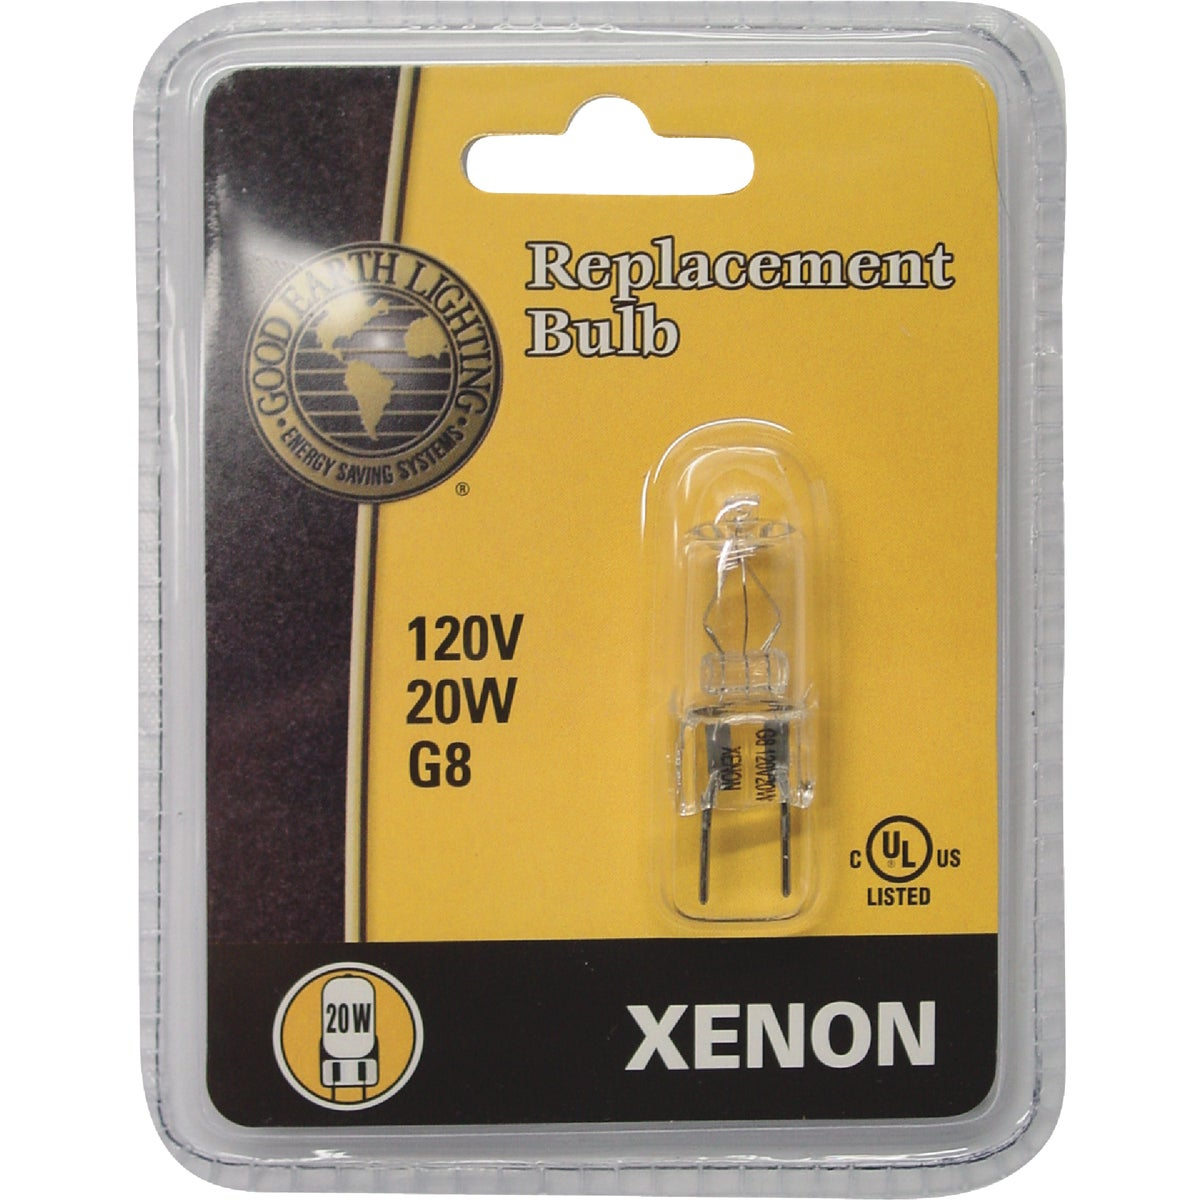 20W G8 XENON BULB - G8-120V20W-XBLB by Good Earth Lighting